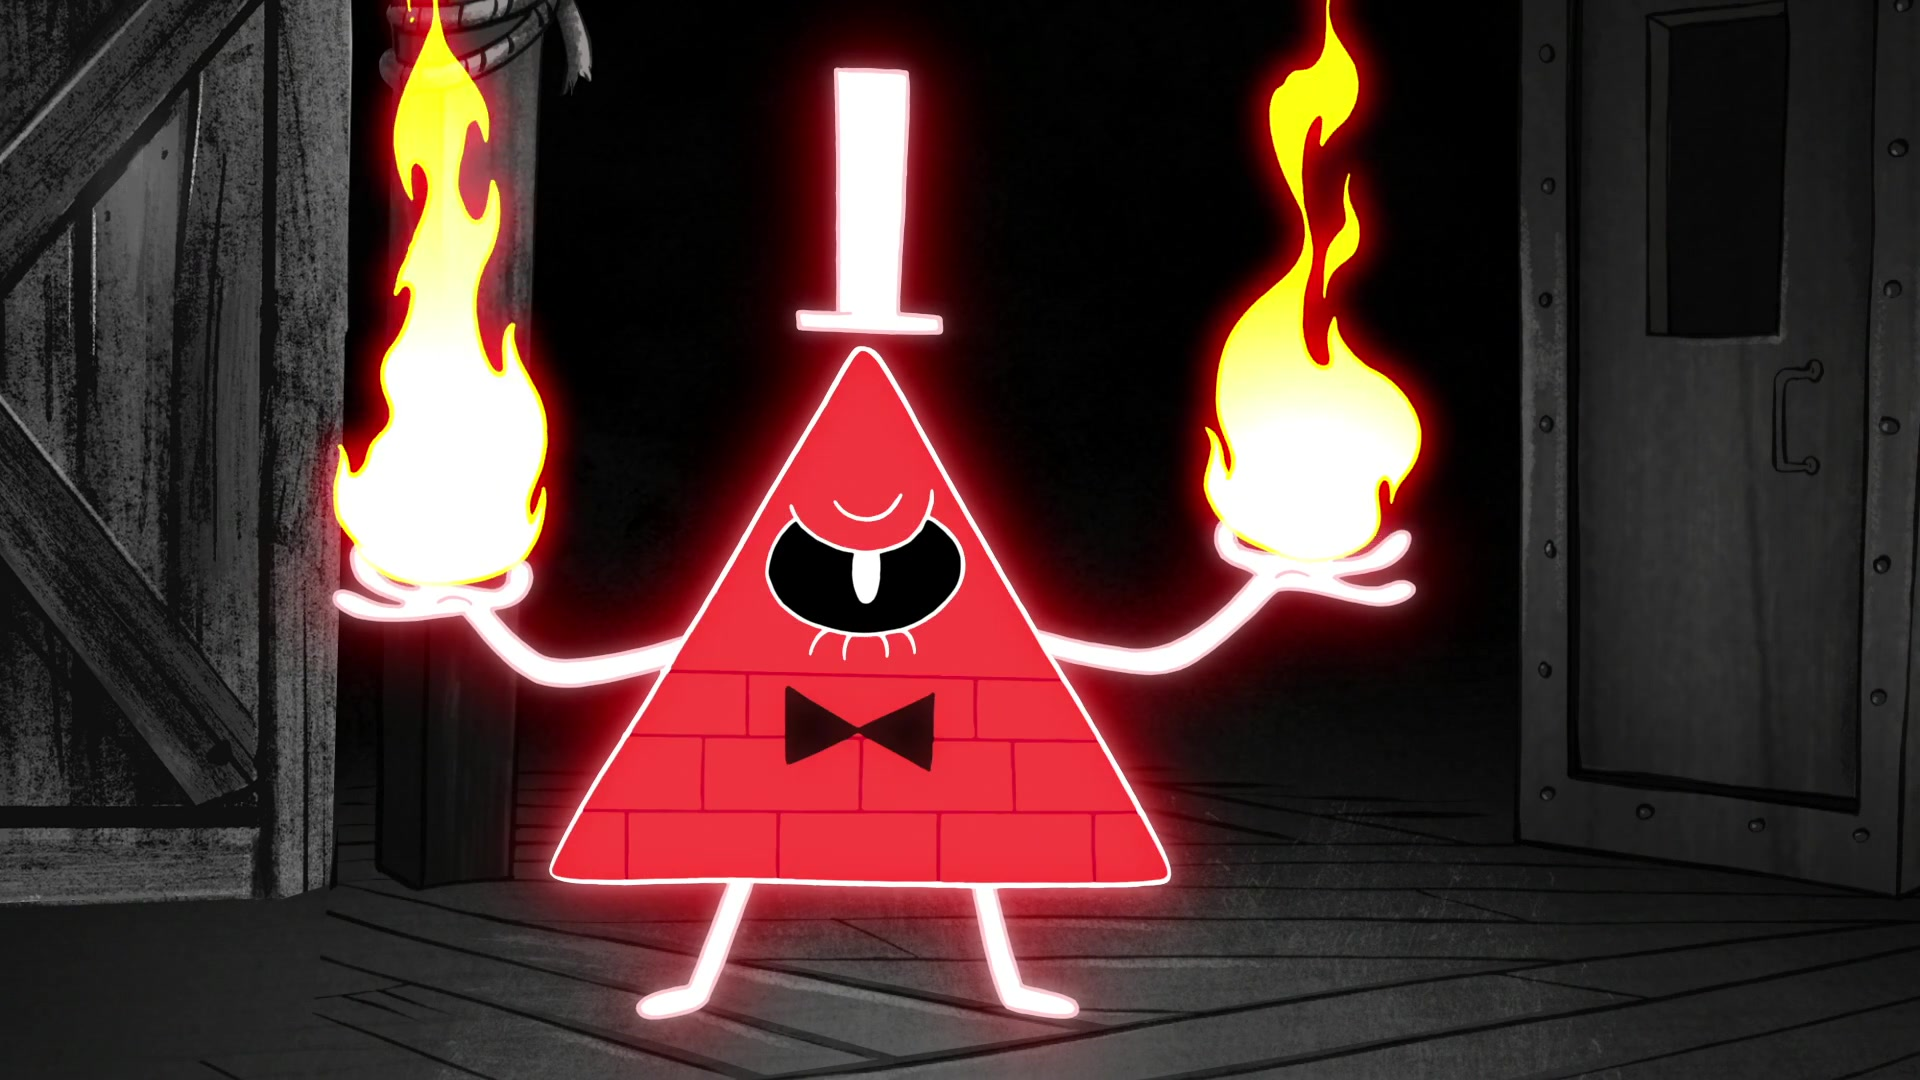 Gravity Falls Wallpaper For Android The Fury Of Bill 1 Image Gravity Falls Mod Db